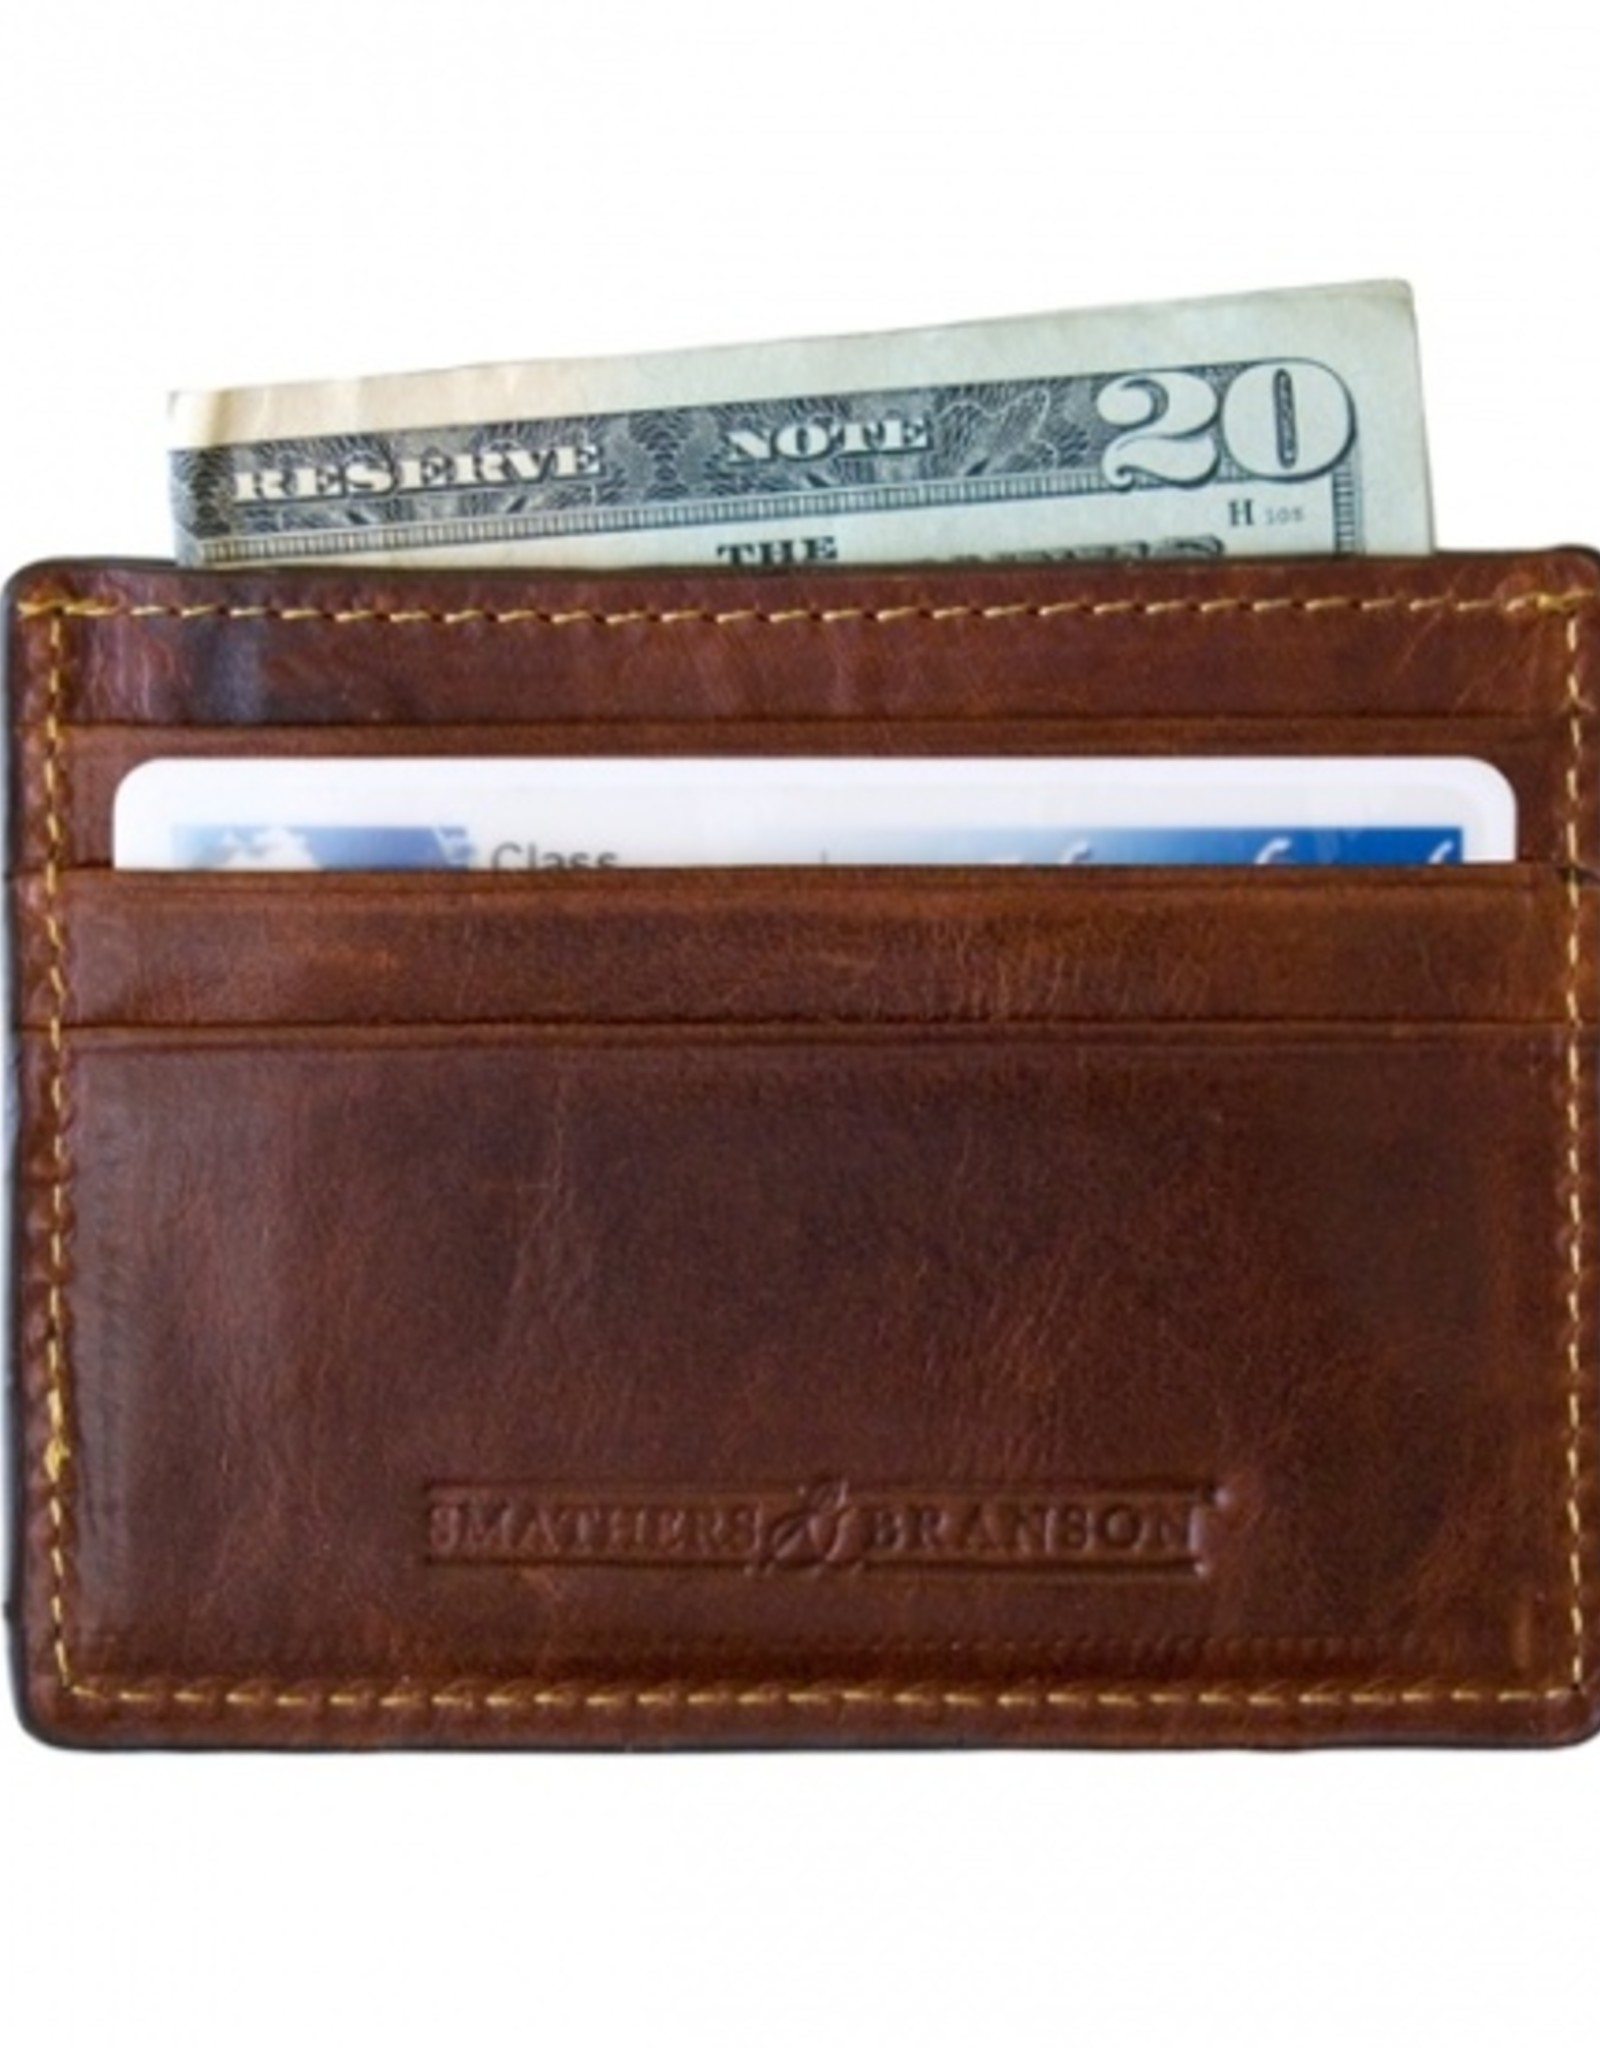 Smathers & Branson Smather's & Branson Collegiate Credit Card Wallet